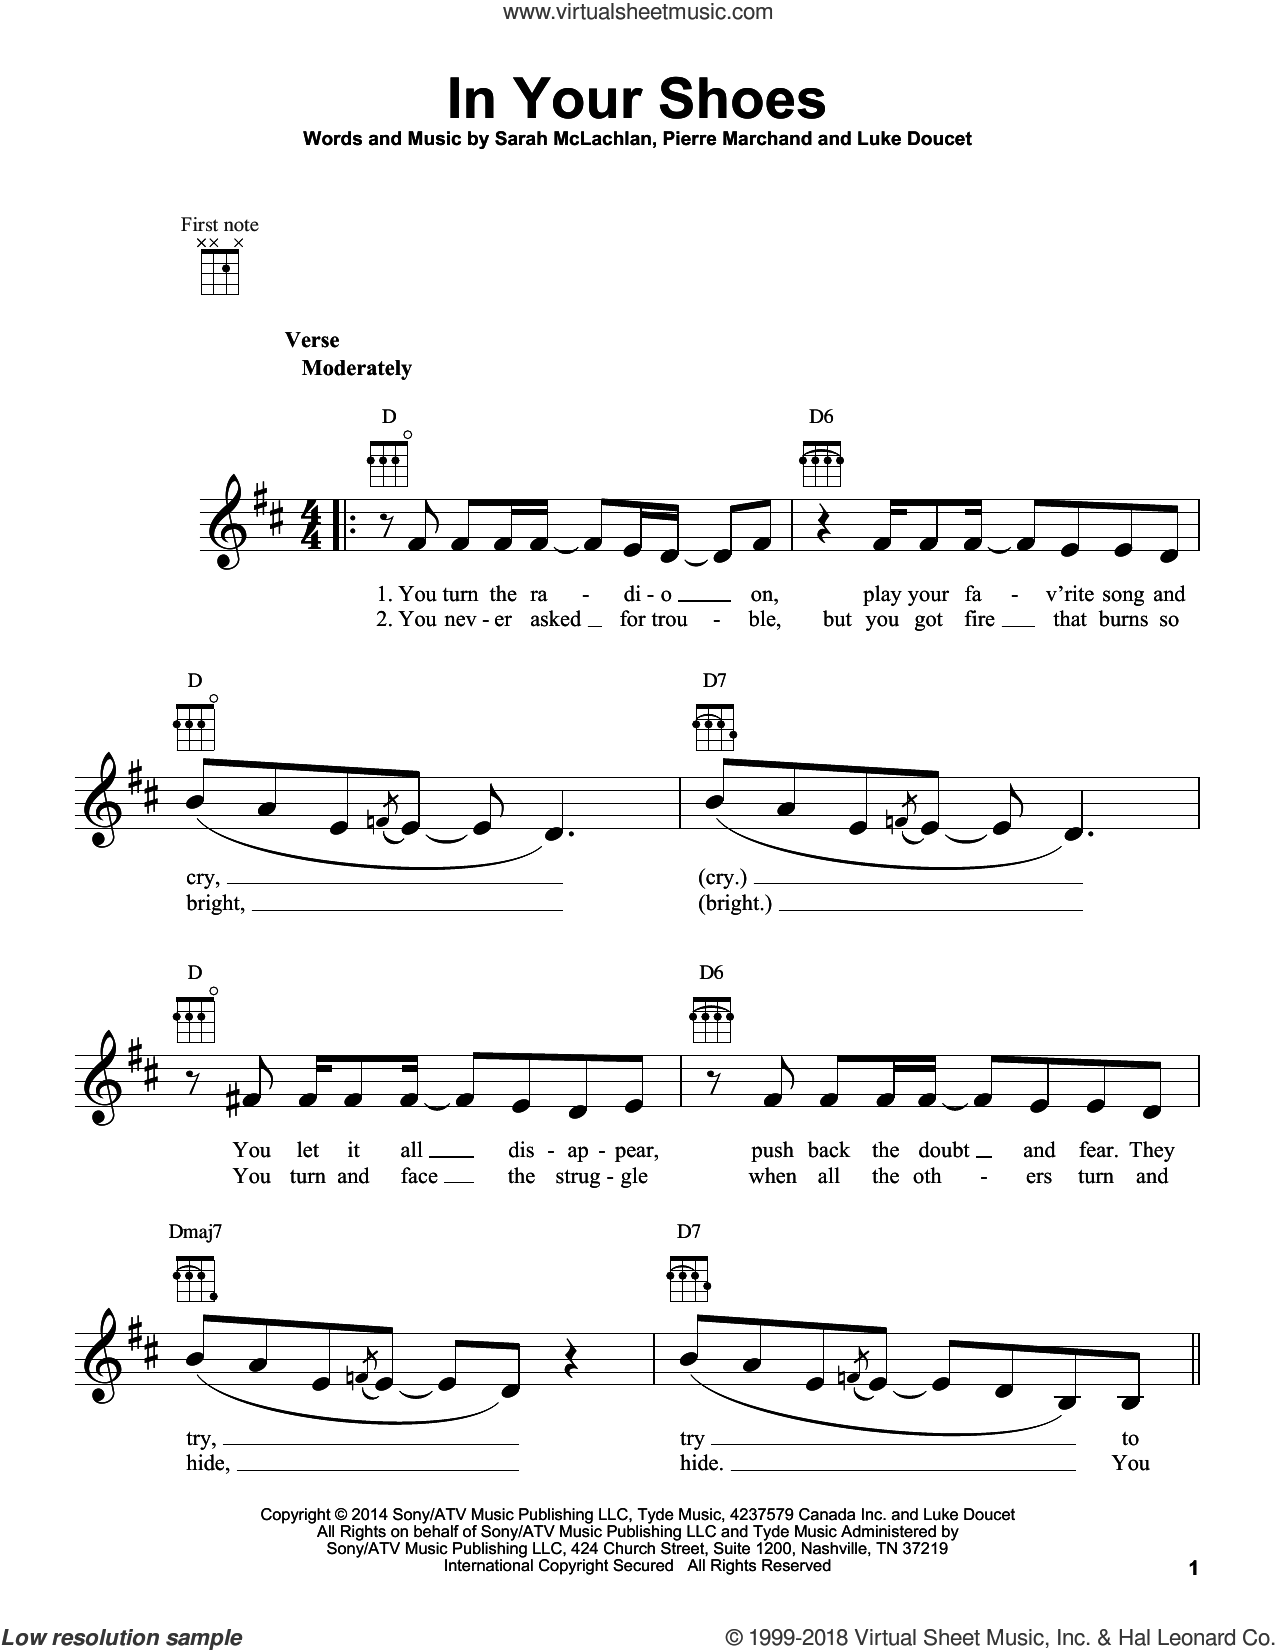 In Your Shoes sheet music for ukulele by Sarah McLachlan, Luke Doucet and Pierre Marchand, intermediate skill level